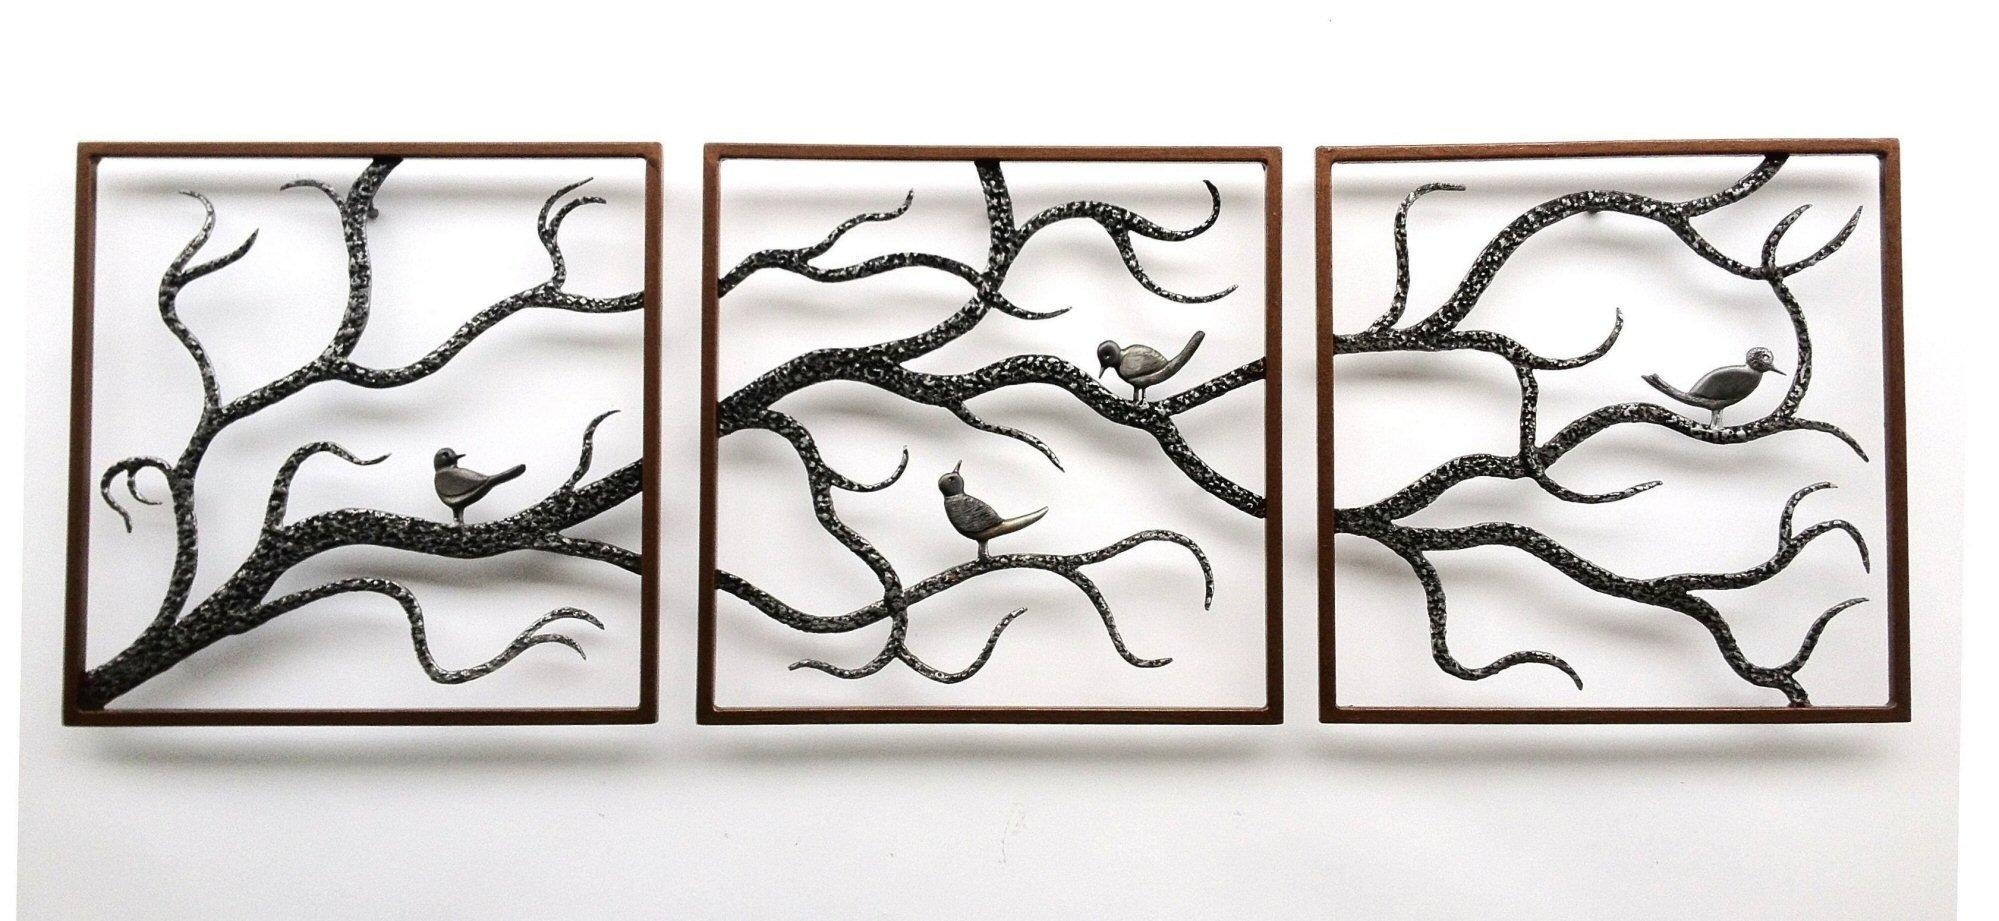 Wall Art Designs: Metal Wall Art Trees Birch Three Framed Cute With Regard To Metal Oak Tree Wall Art (Image 18 of 20)